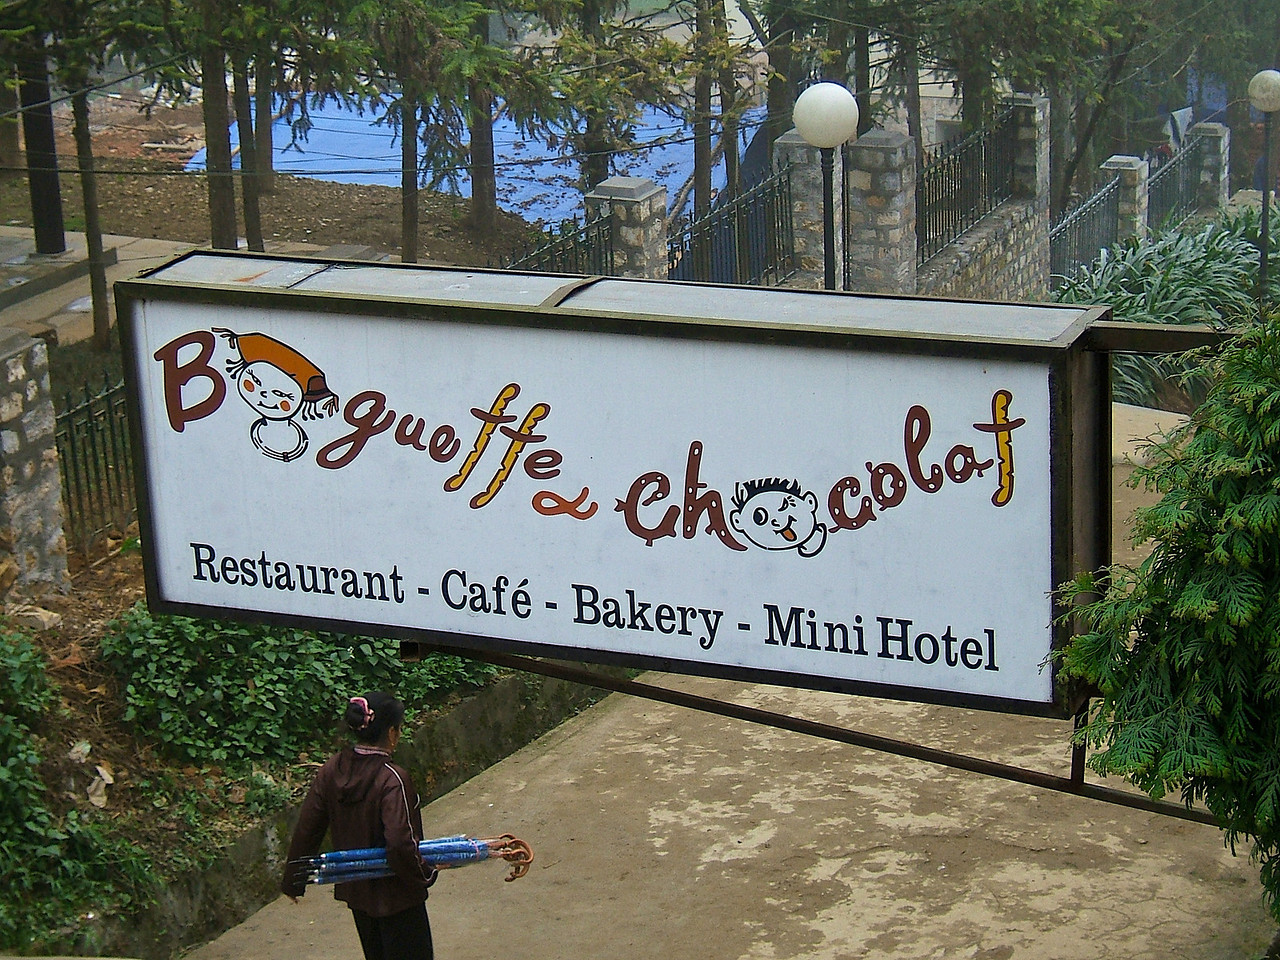 Baguette Chocolat is a great place to stop for lunch.